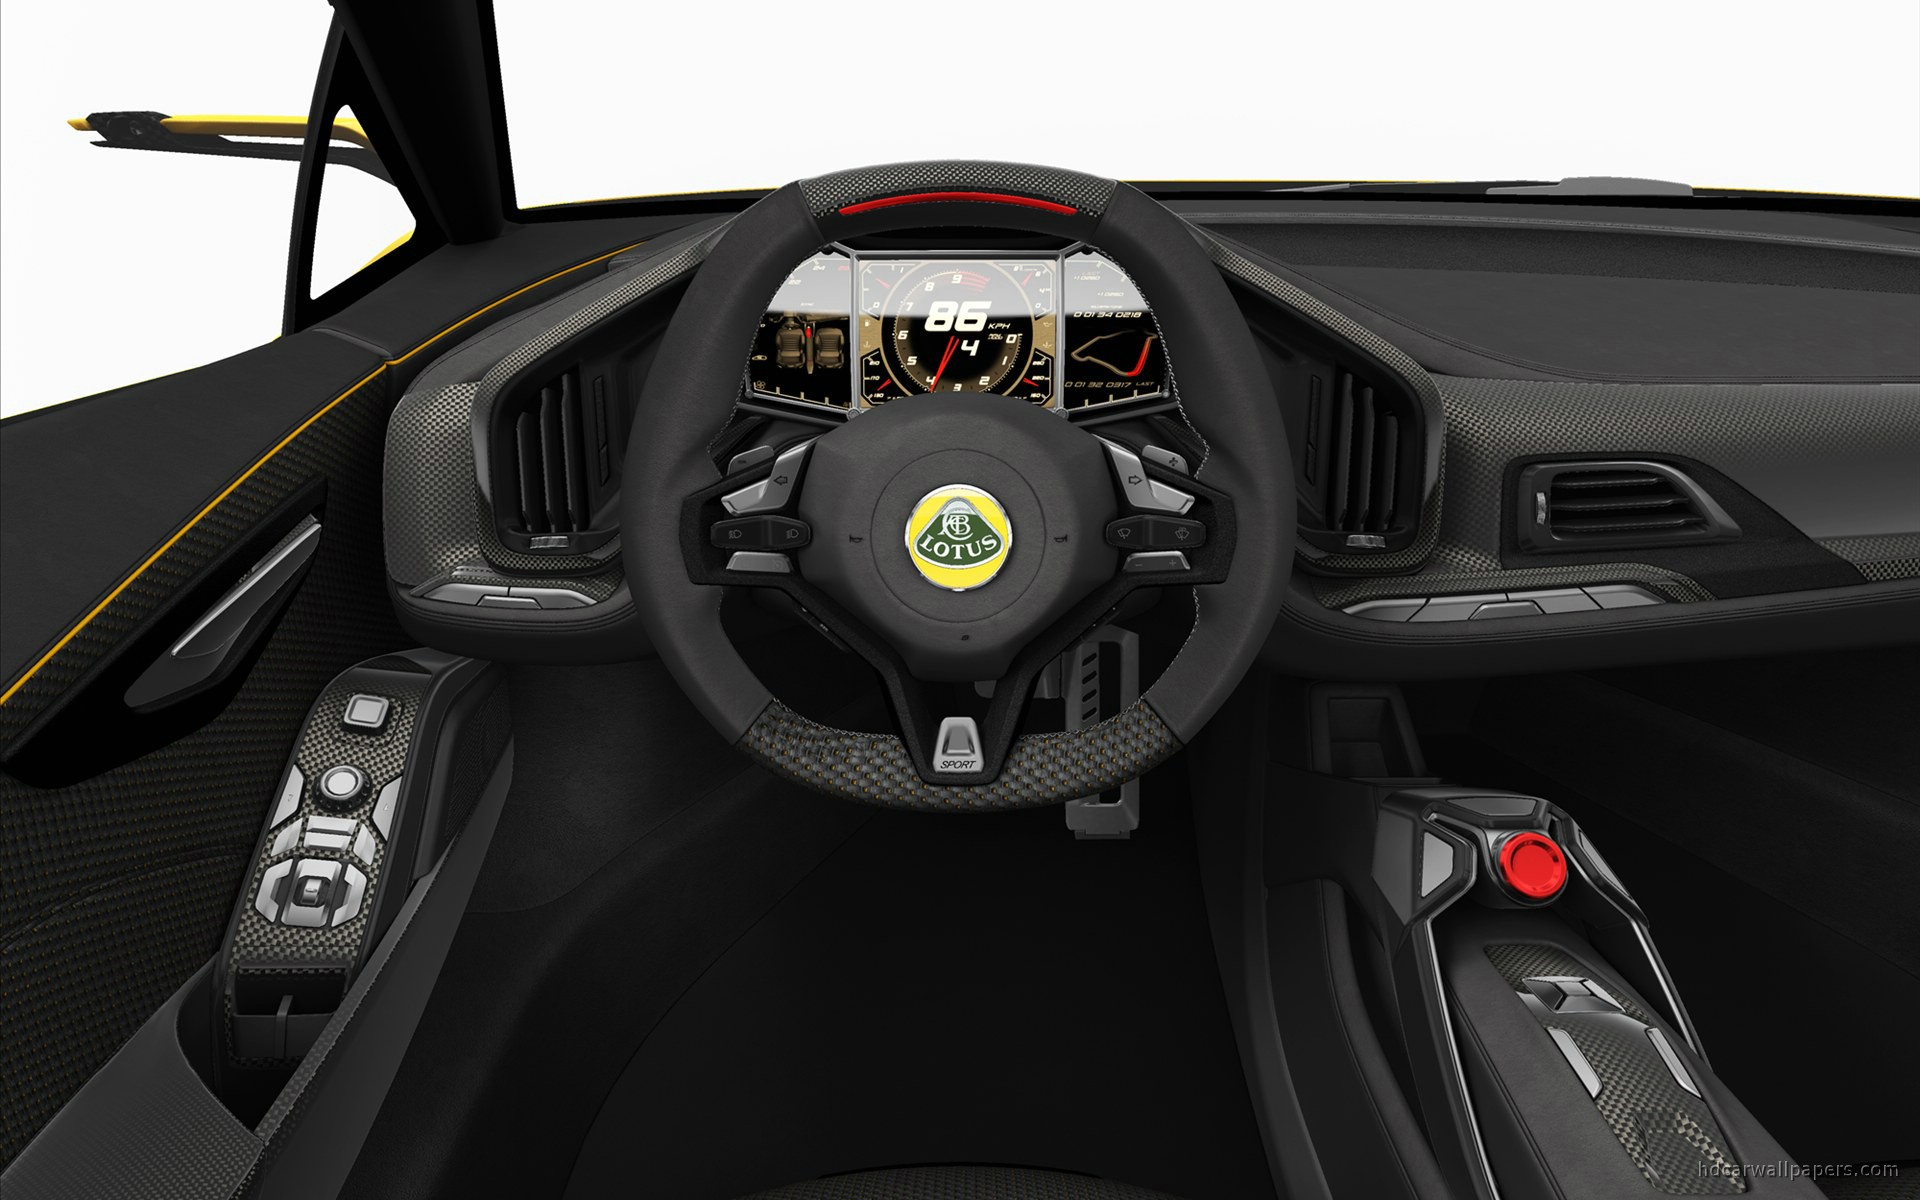 http://www.hdcarwallpapers.com/walls/2010_lotus_elan_concept_interior-wide.jpg